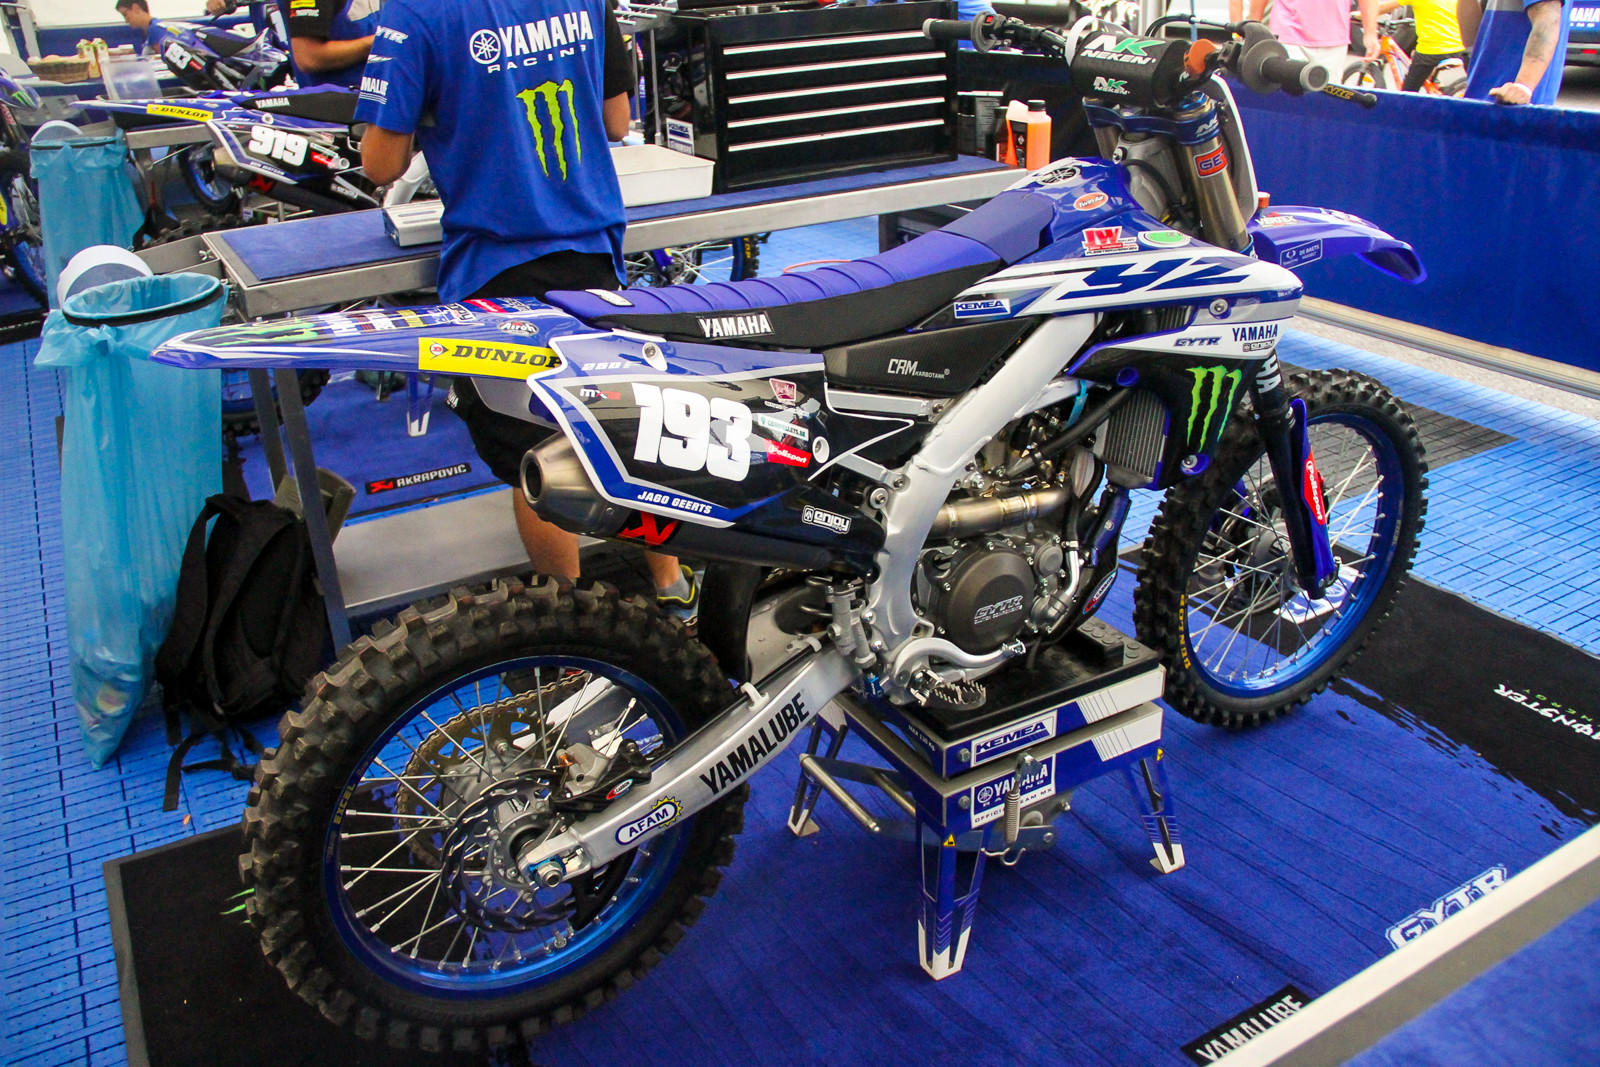 The Kemea Yamaha team got a late season present as they were able to lineup on the new 2019 YZ250F.